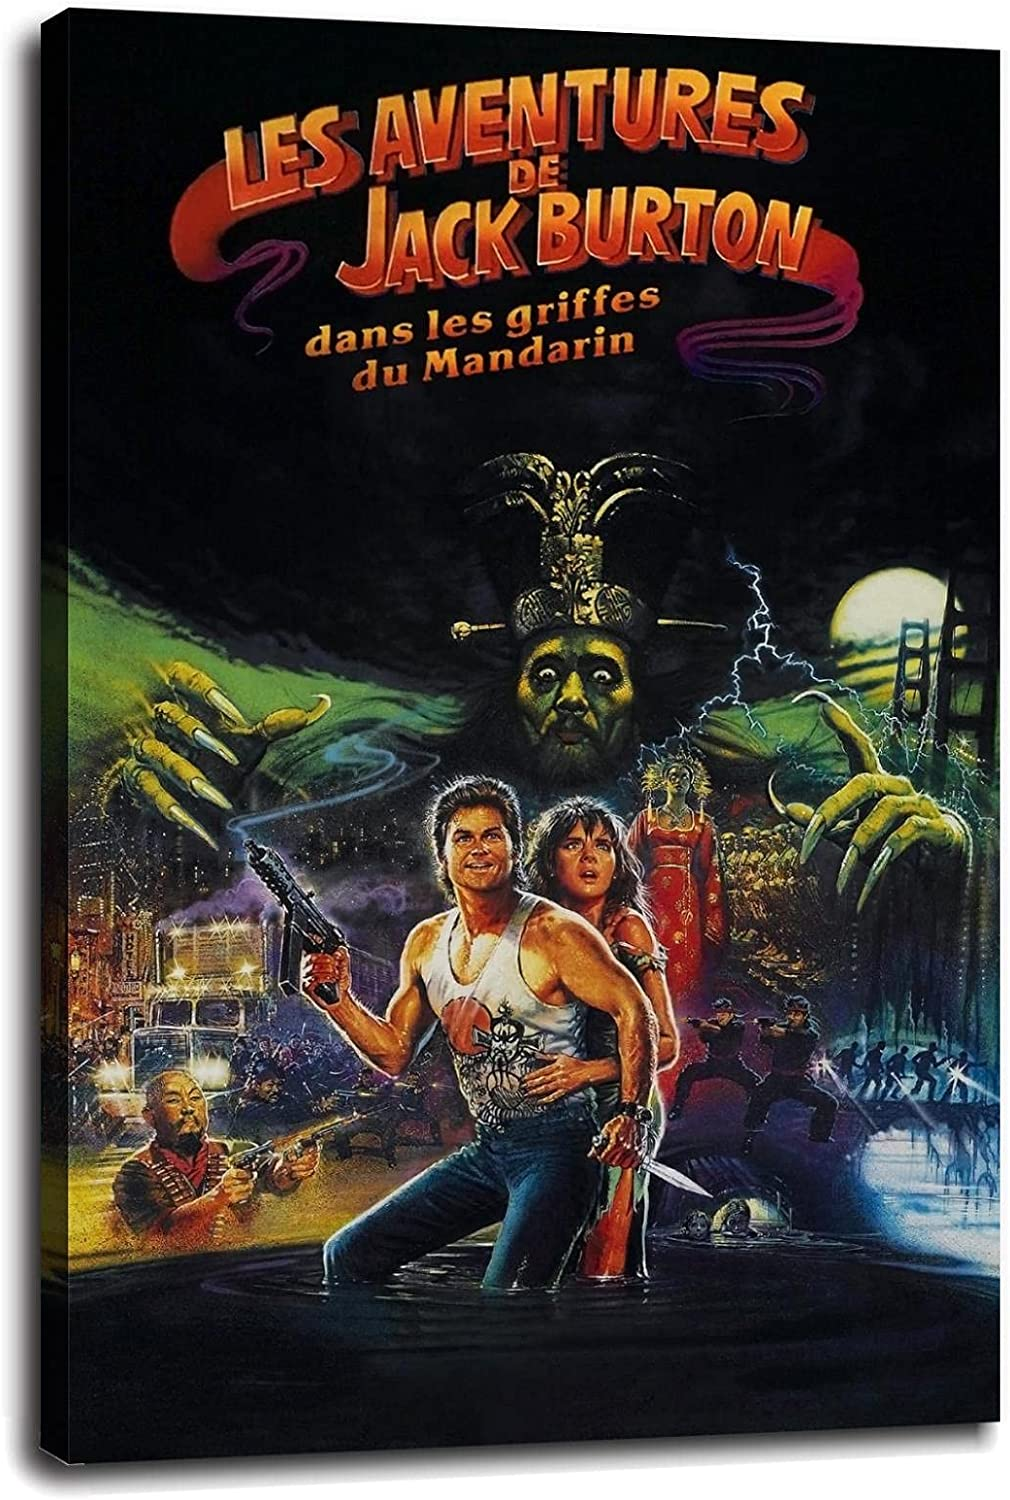 Big Trouble In Little China Lobby Card Movie Poster Canvas Prints Poster Wall Art For Home Office Decorations With Framed 12